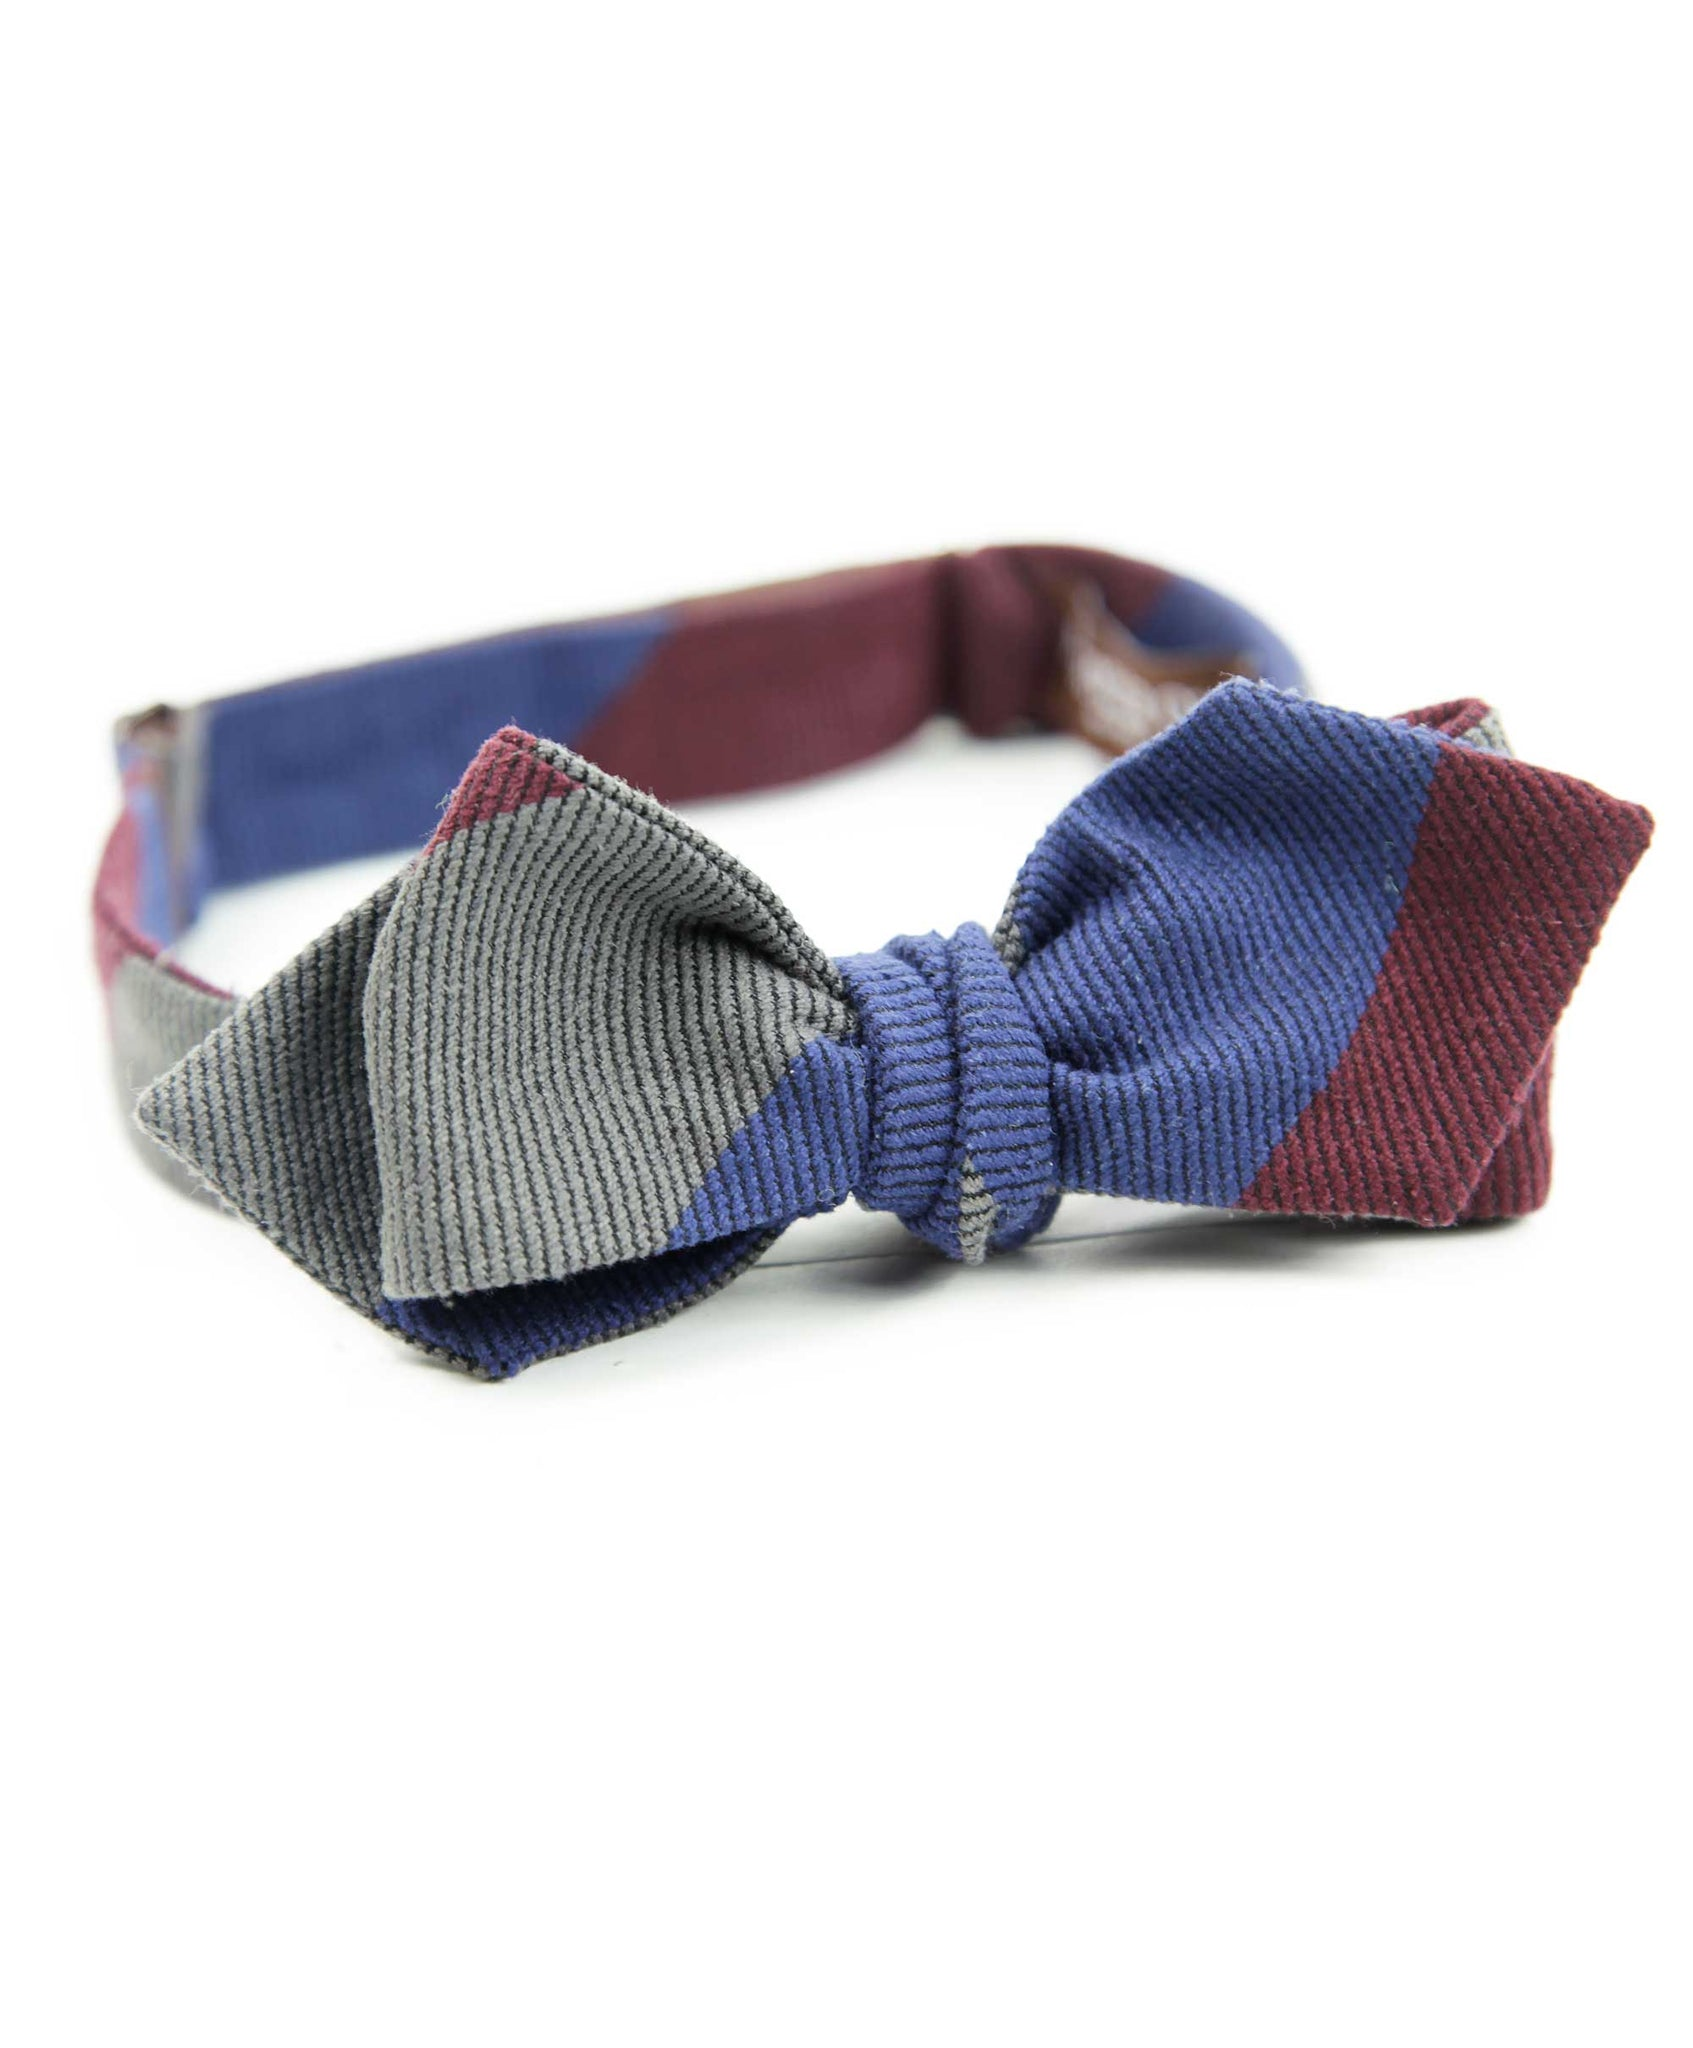 The Williams Bow Tie